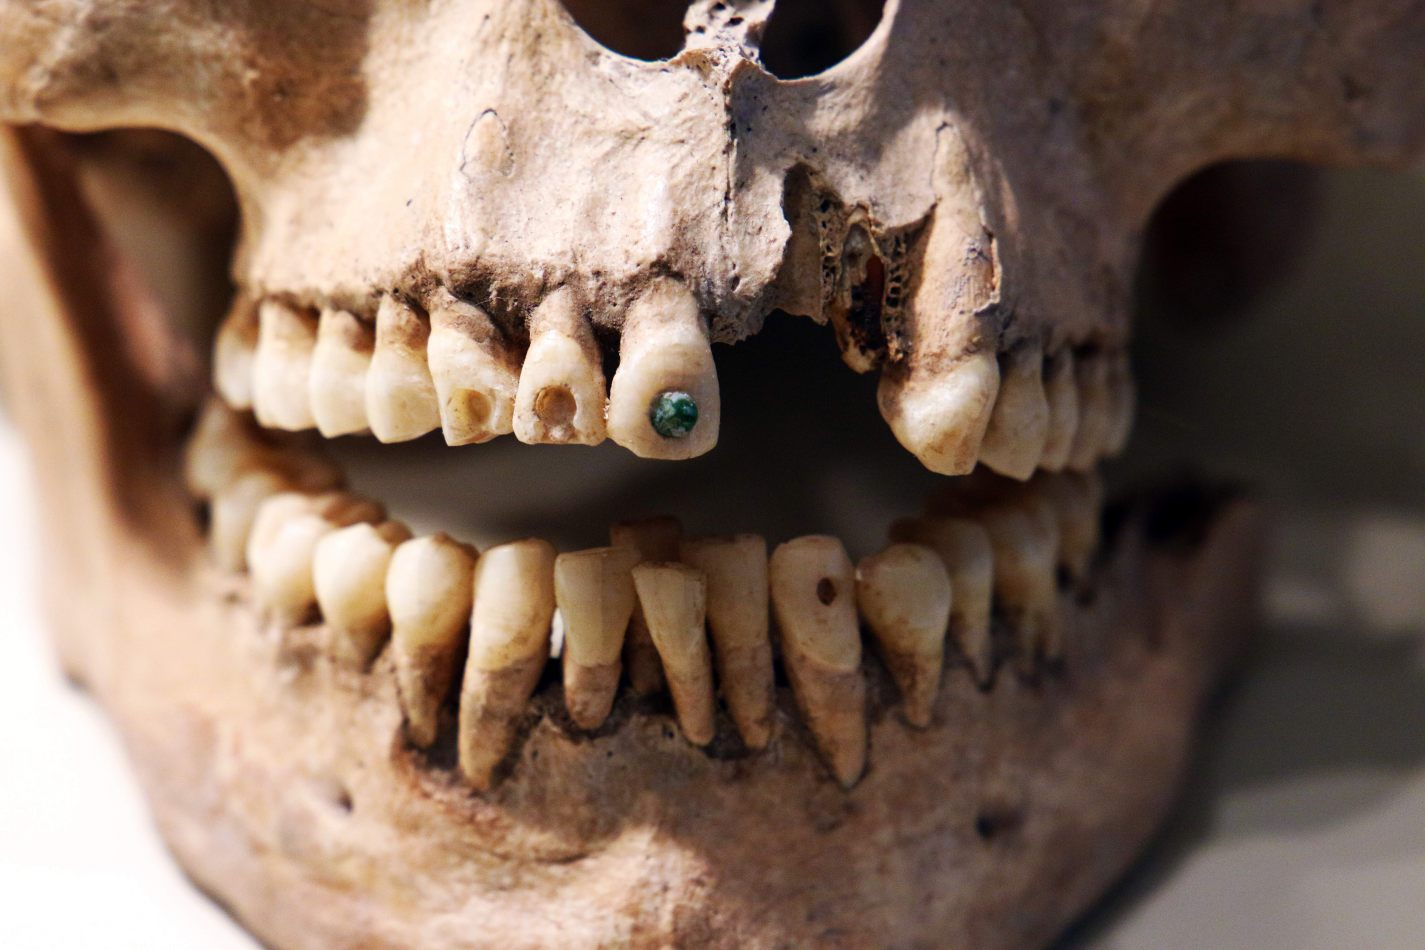 Anthony Ellis Photography: Small Sacrifices - Jewelled Teeth